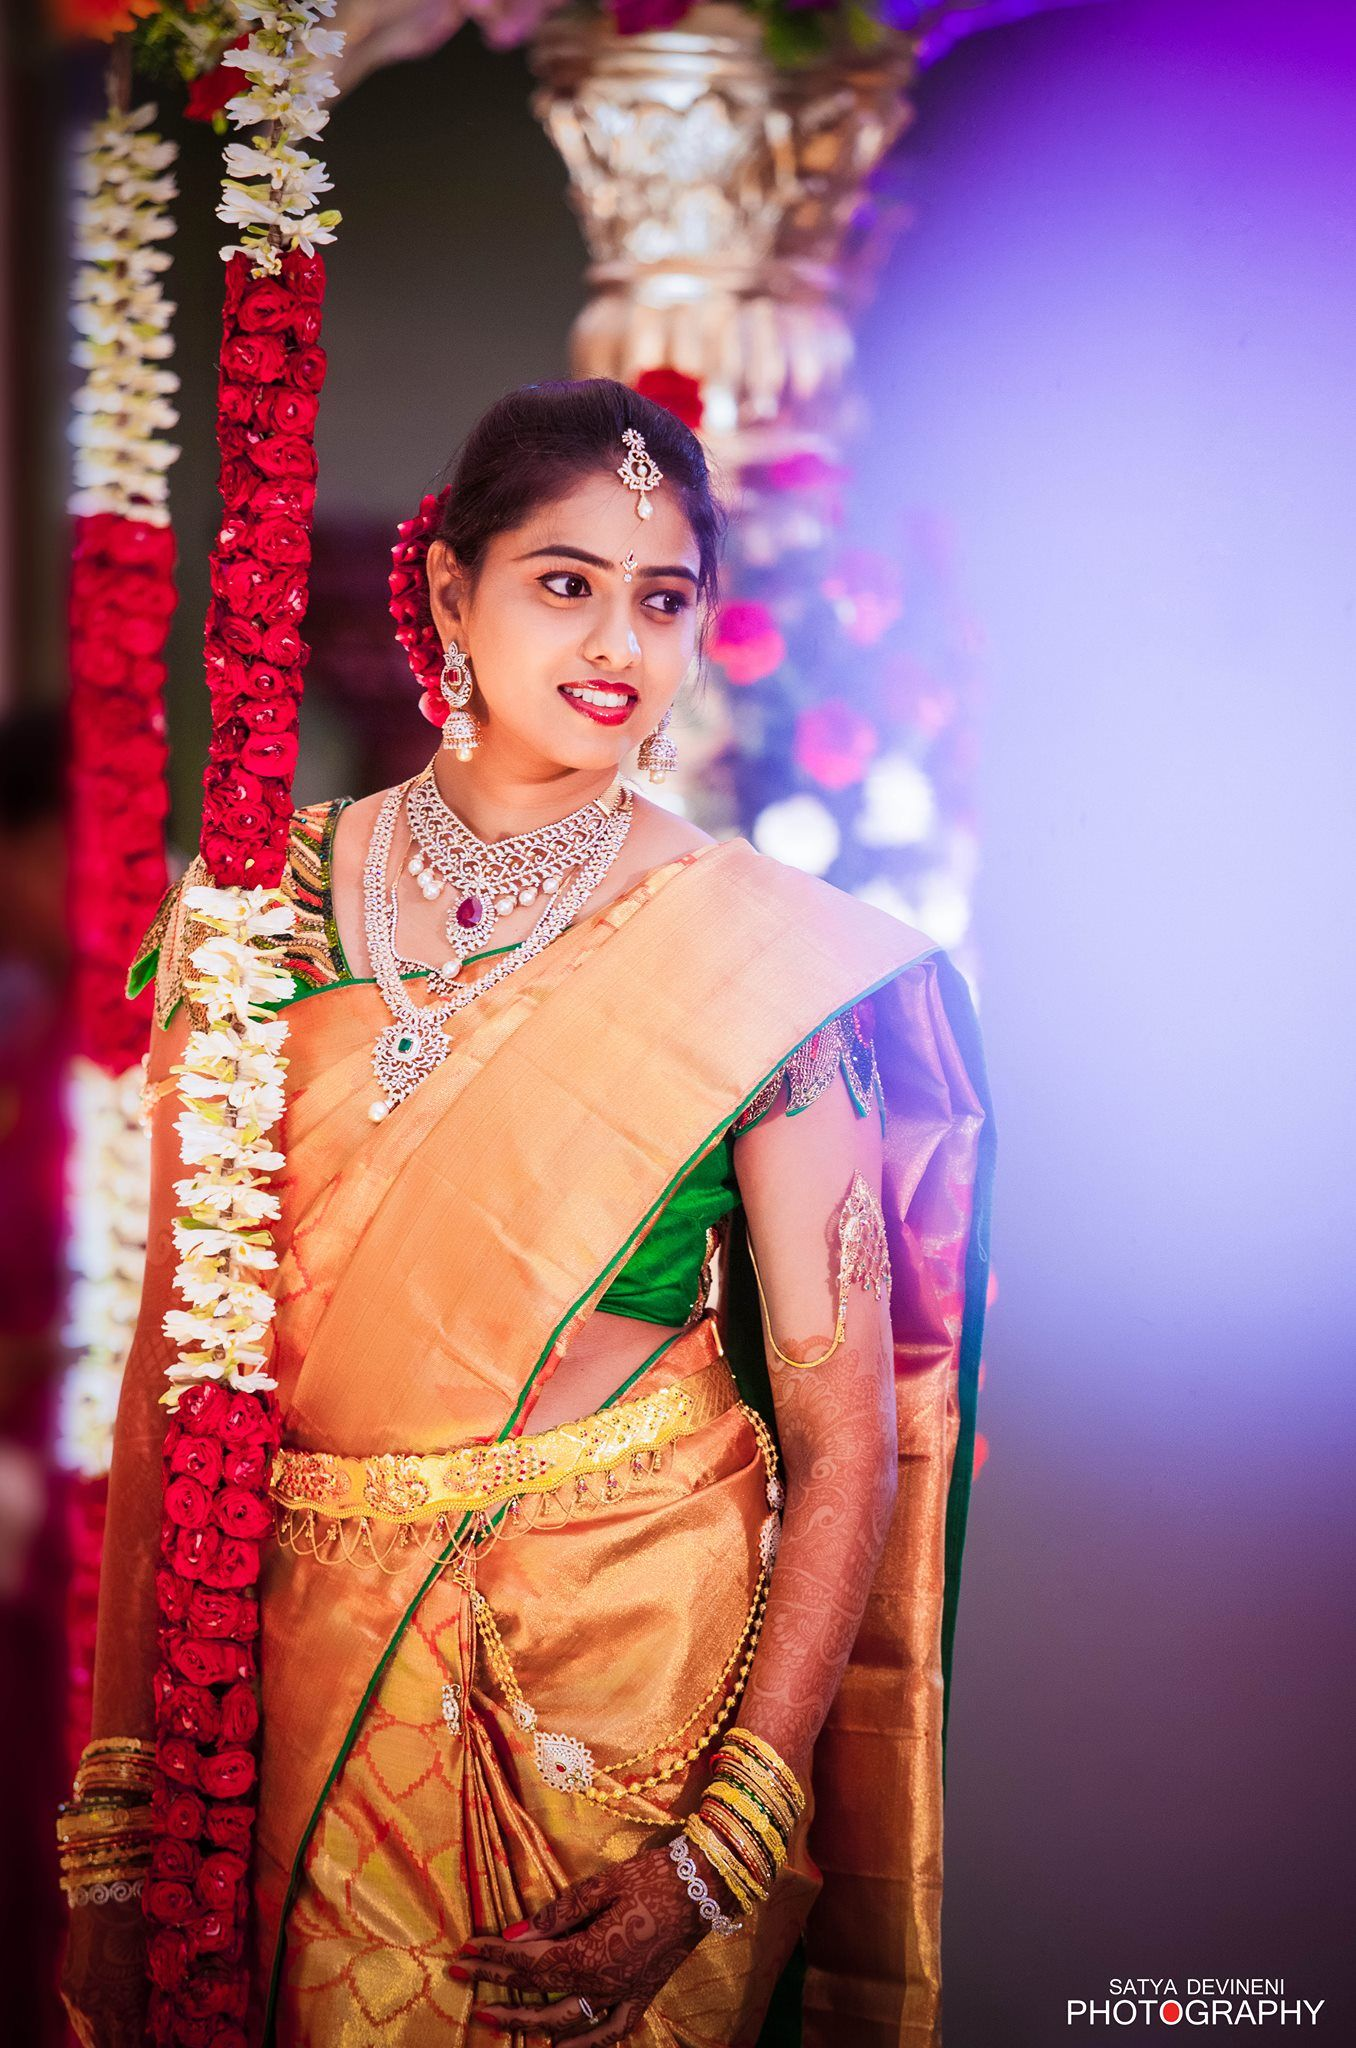 Traditional South Indian bride wearing bridal saree jewellery and